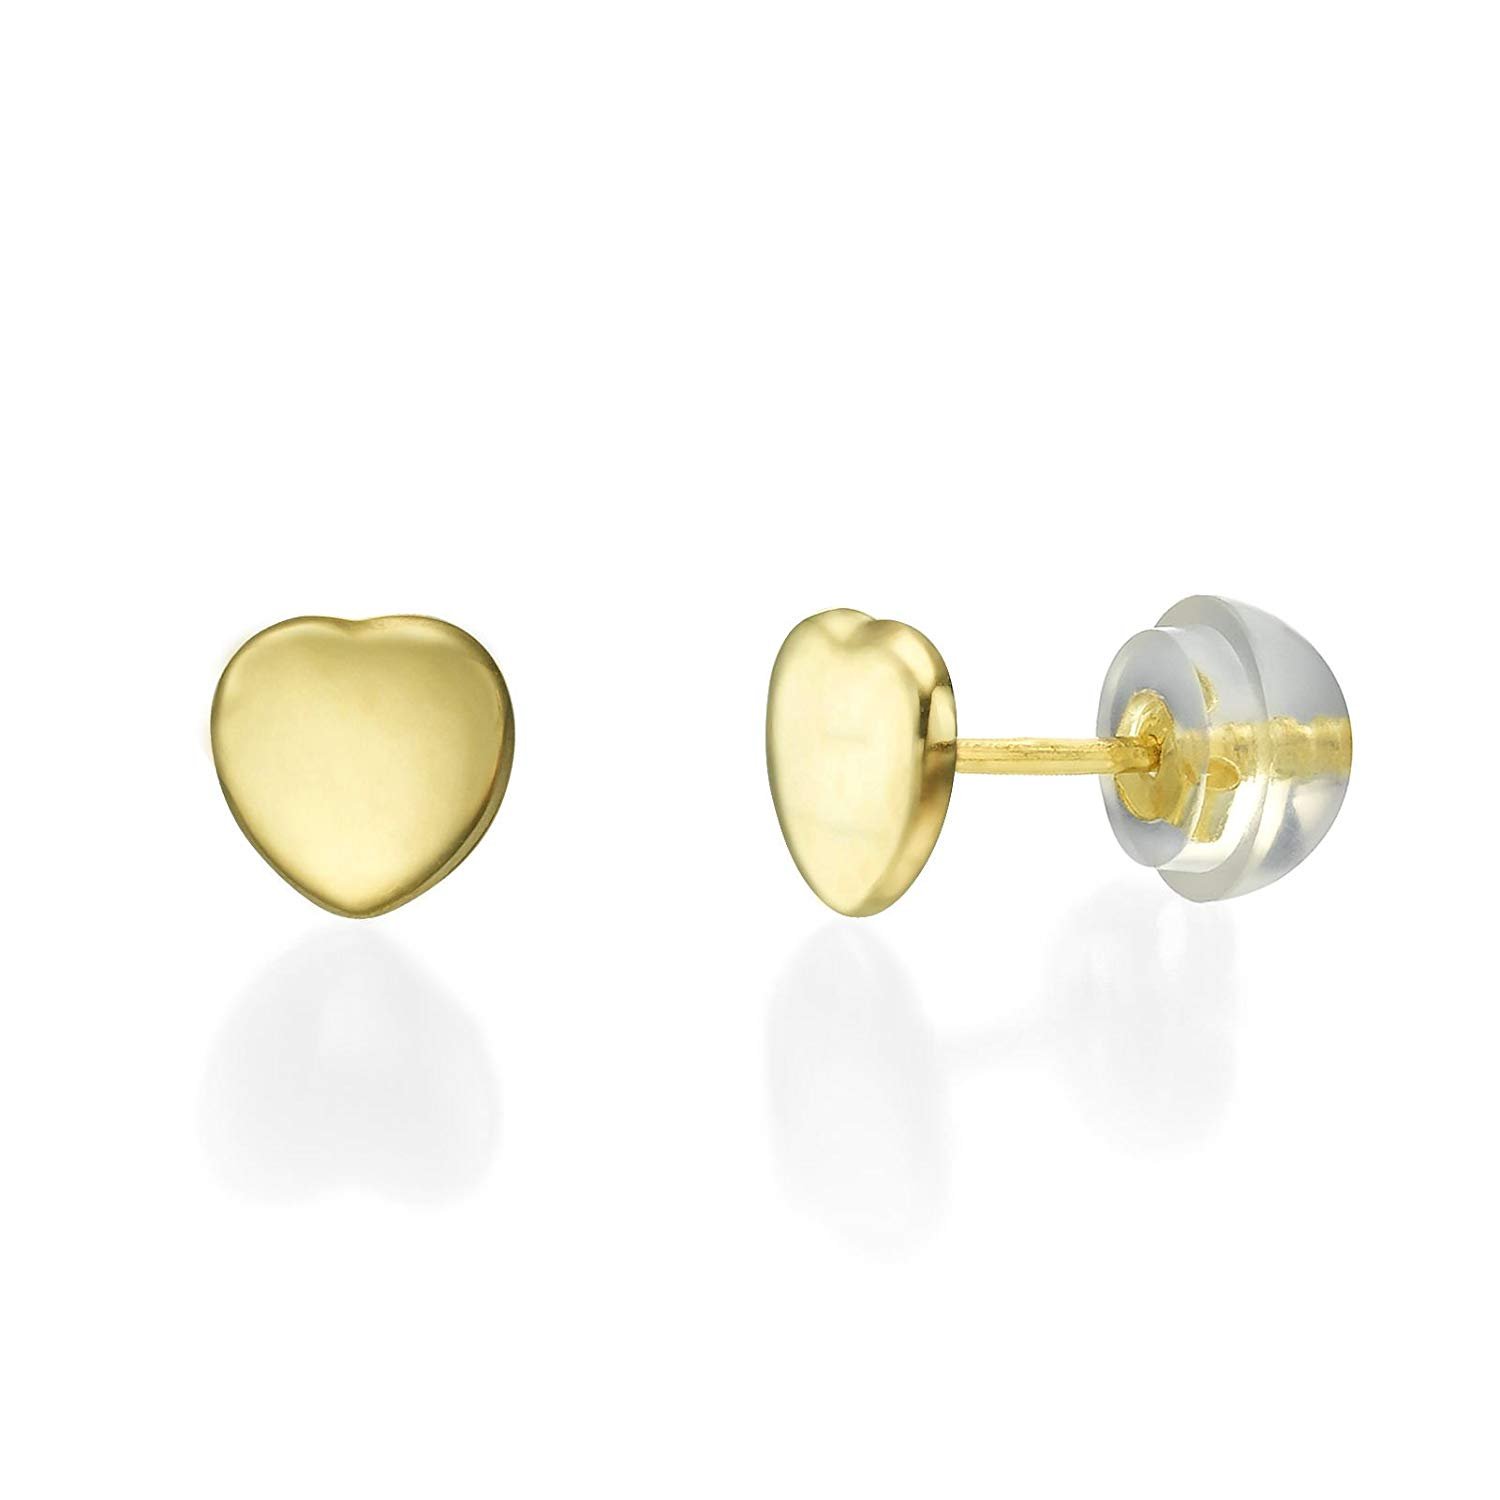 cfc4a0ac3 Get Quotations · 14K Solid Yellow Gold Heart Screw Back Stud Earrings for  Teens and Women Kids Children Gift